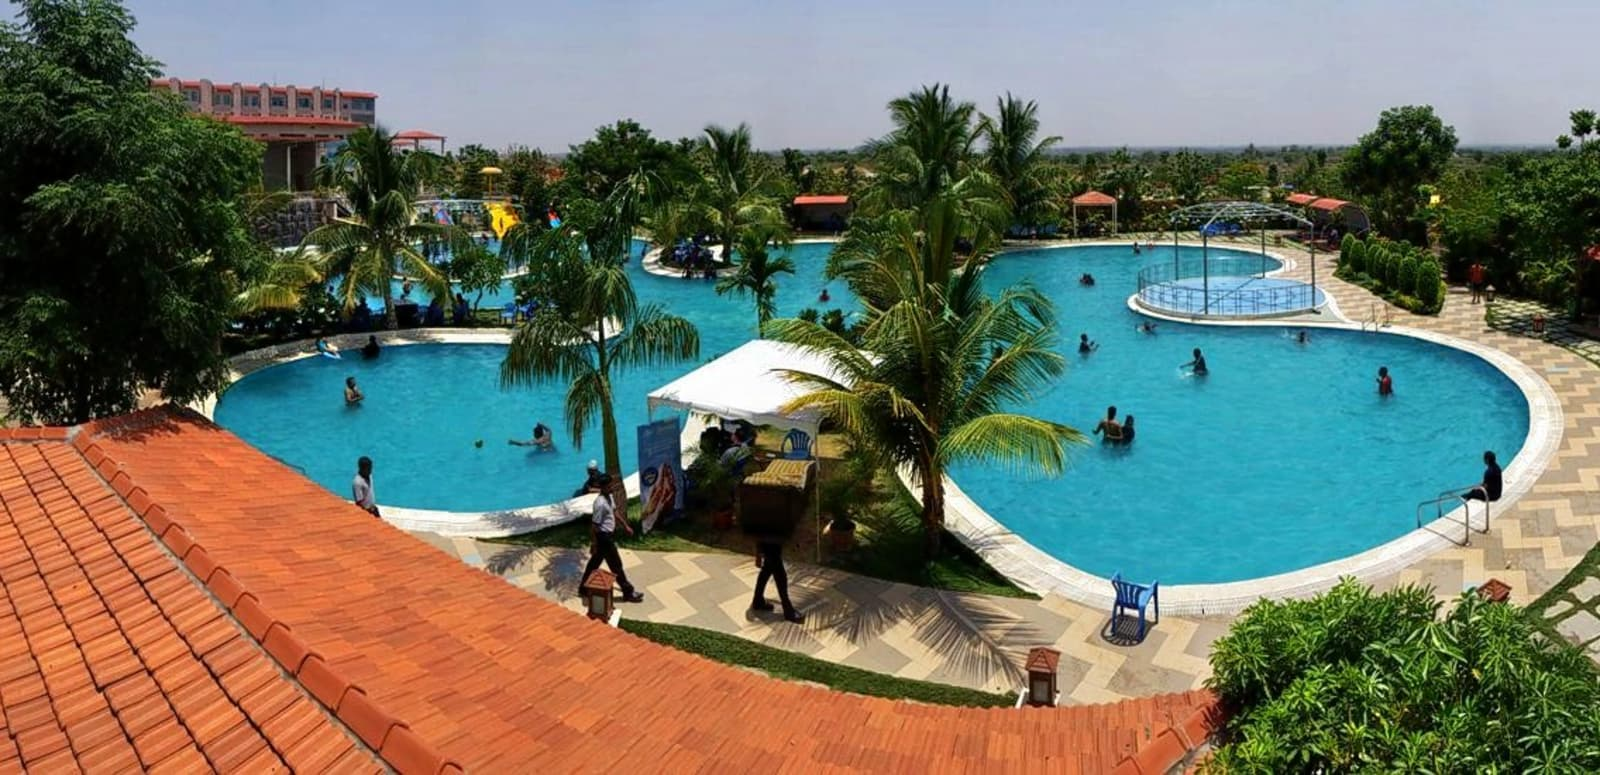 Best Resorts In Hyderabad For Couples